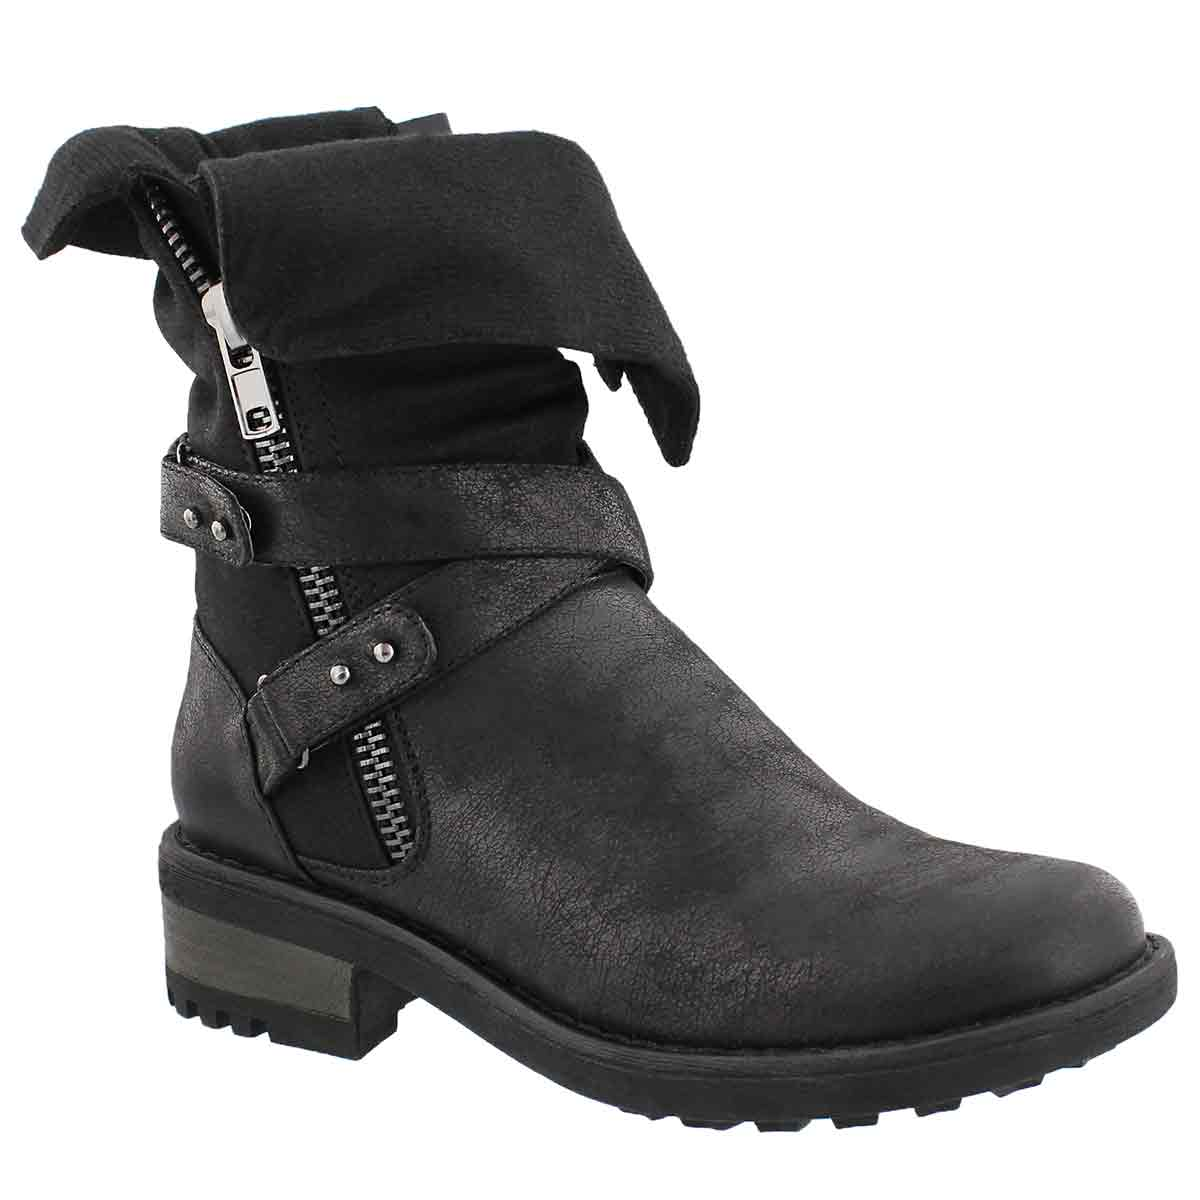 Lds Bellatrix blk casual combat boot